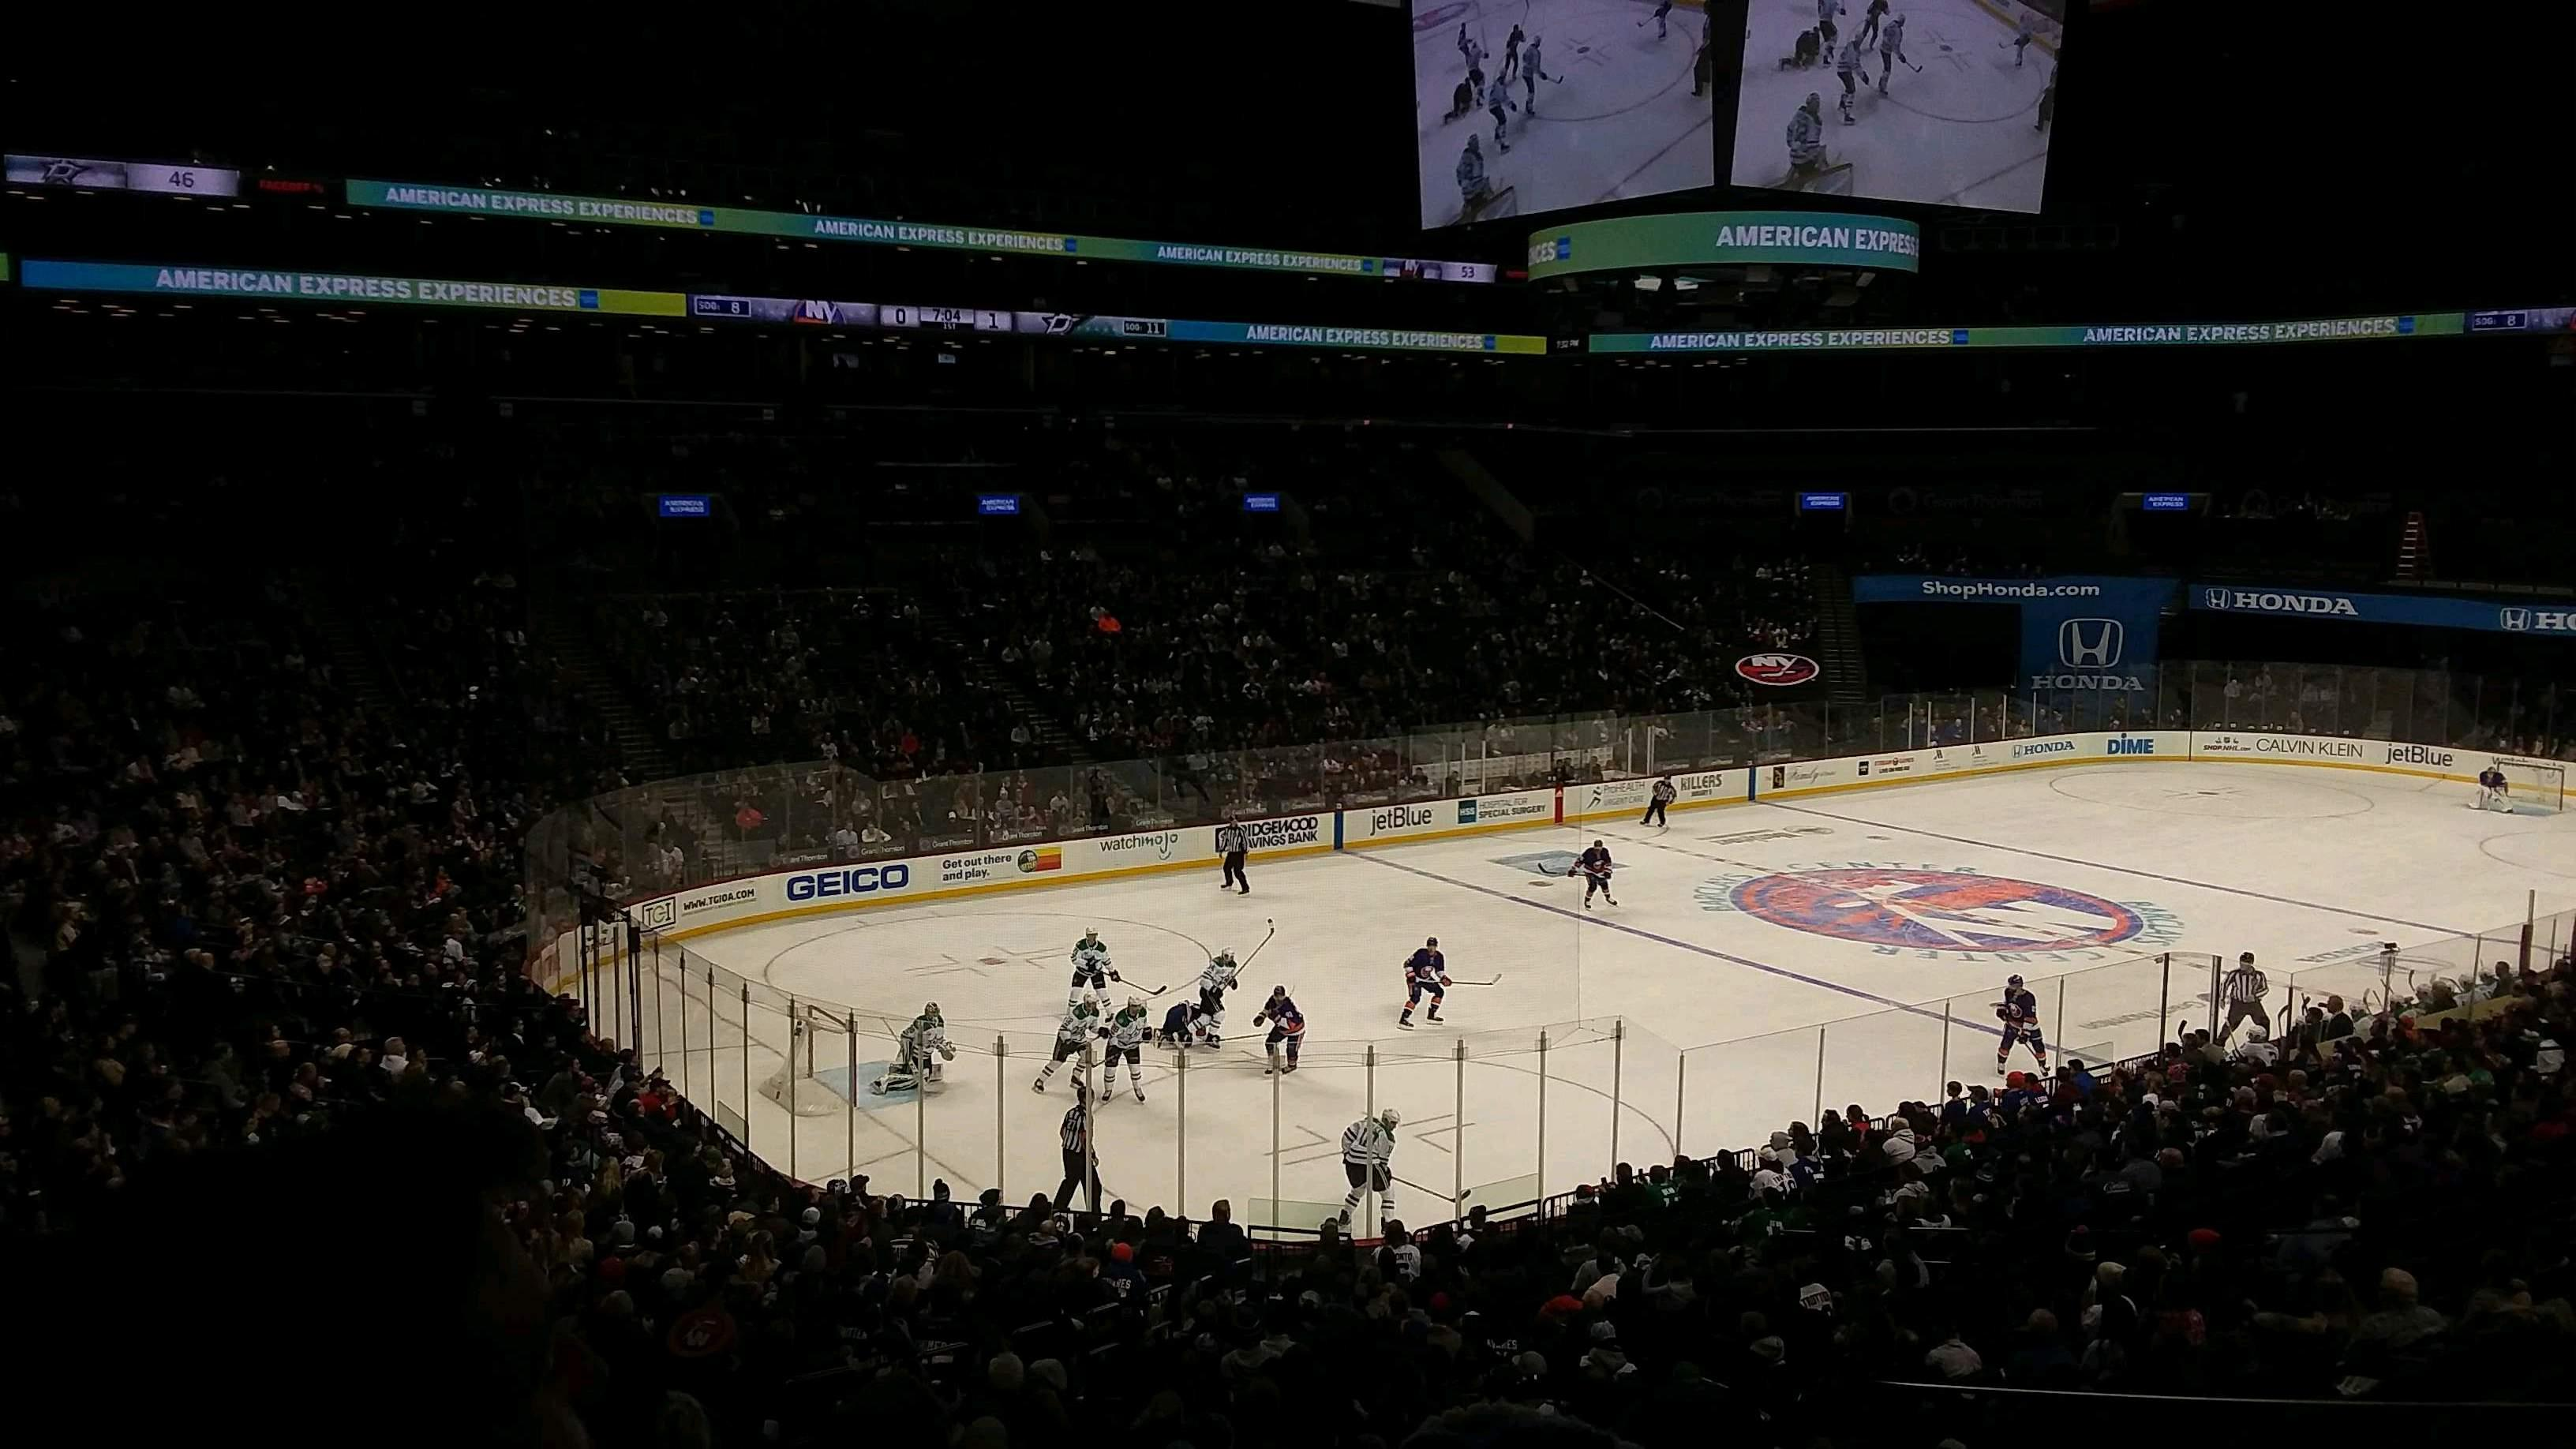 Barclays Center Section 112 Row 5 Seat 1